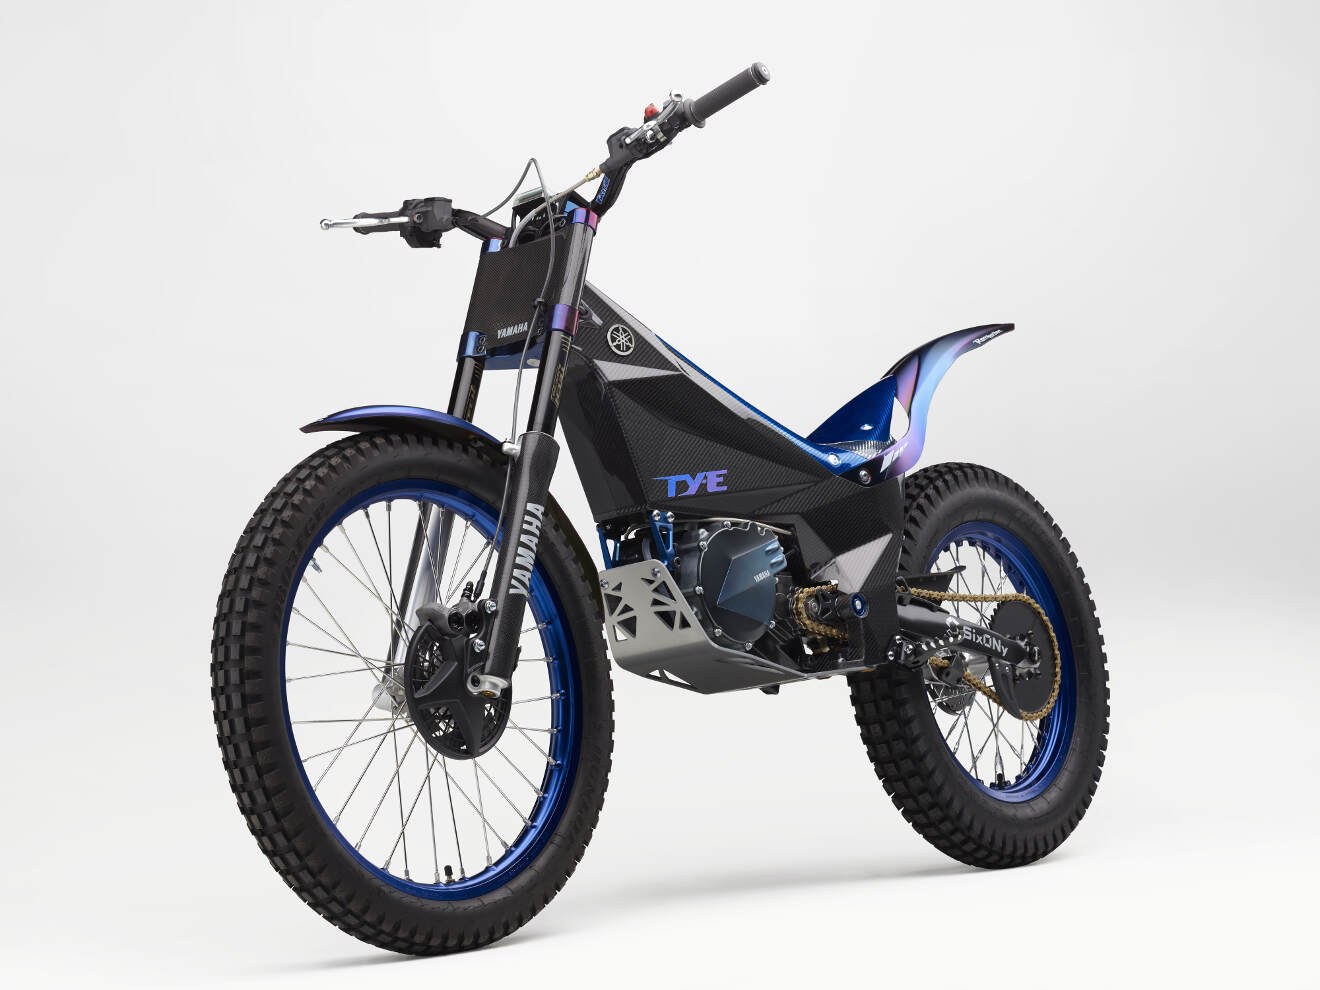 yamaha ty e electric trial bike to compete in fim trial e. Black Bedroom Furniture Sets. Home Design Ideas